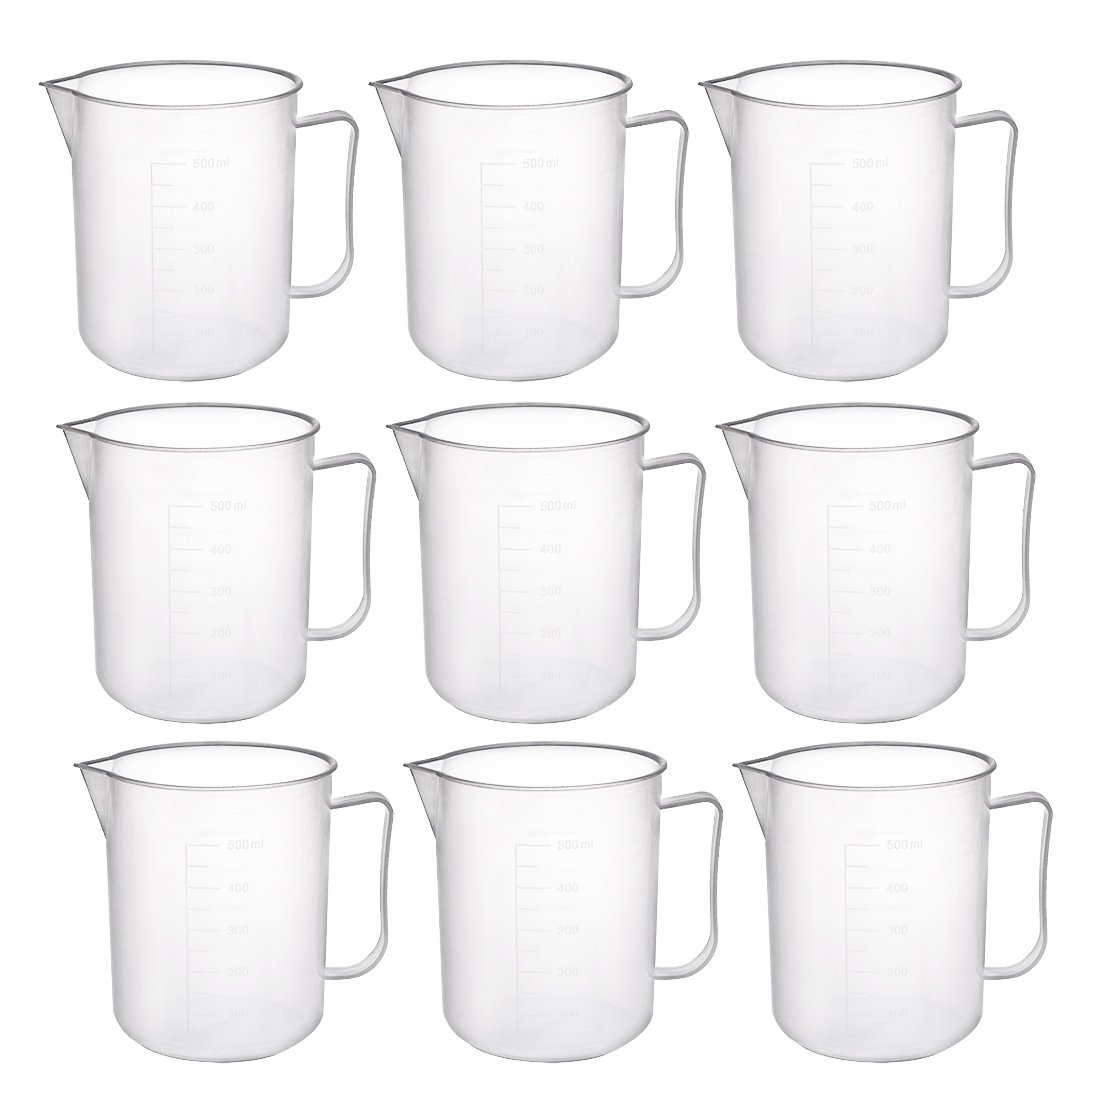 Ranking TOP18 uxcell Measuring Cup 40% OFF Cheap Sale 500ml PP Beaker Graduated Plastic Transpare